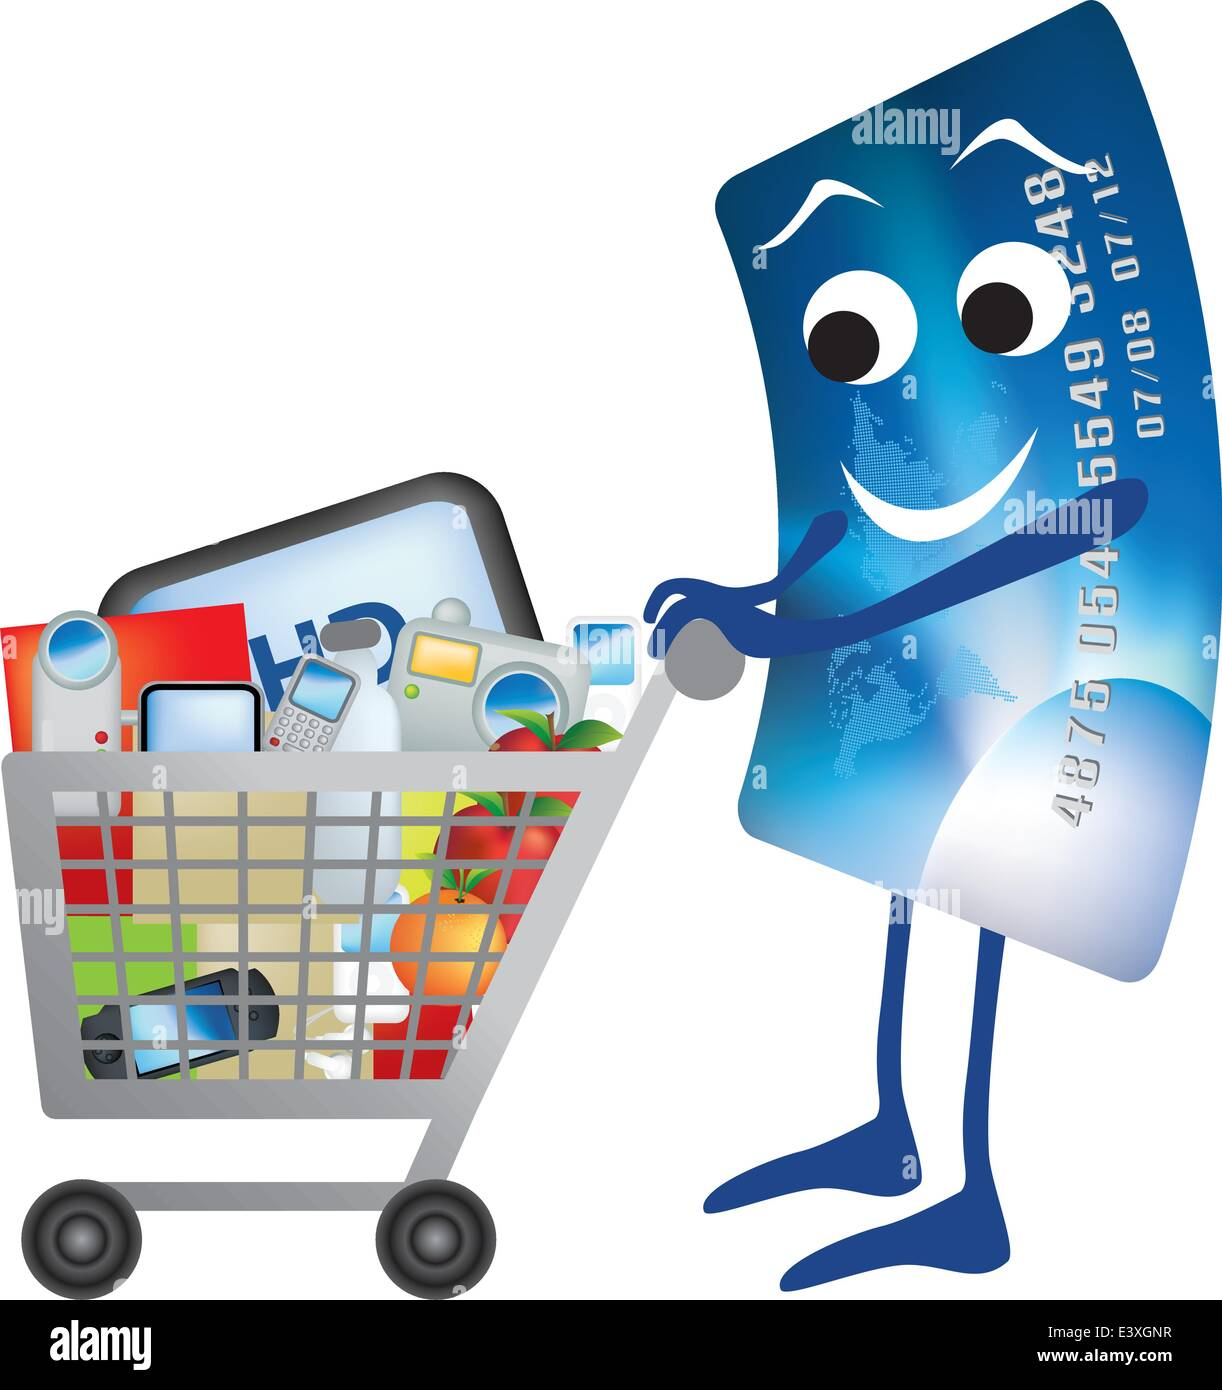 illustration of credit card and shopping trolley cartoon stock